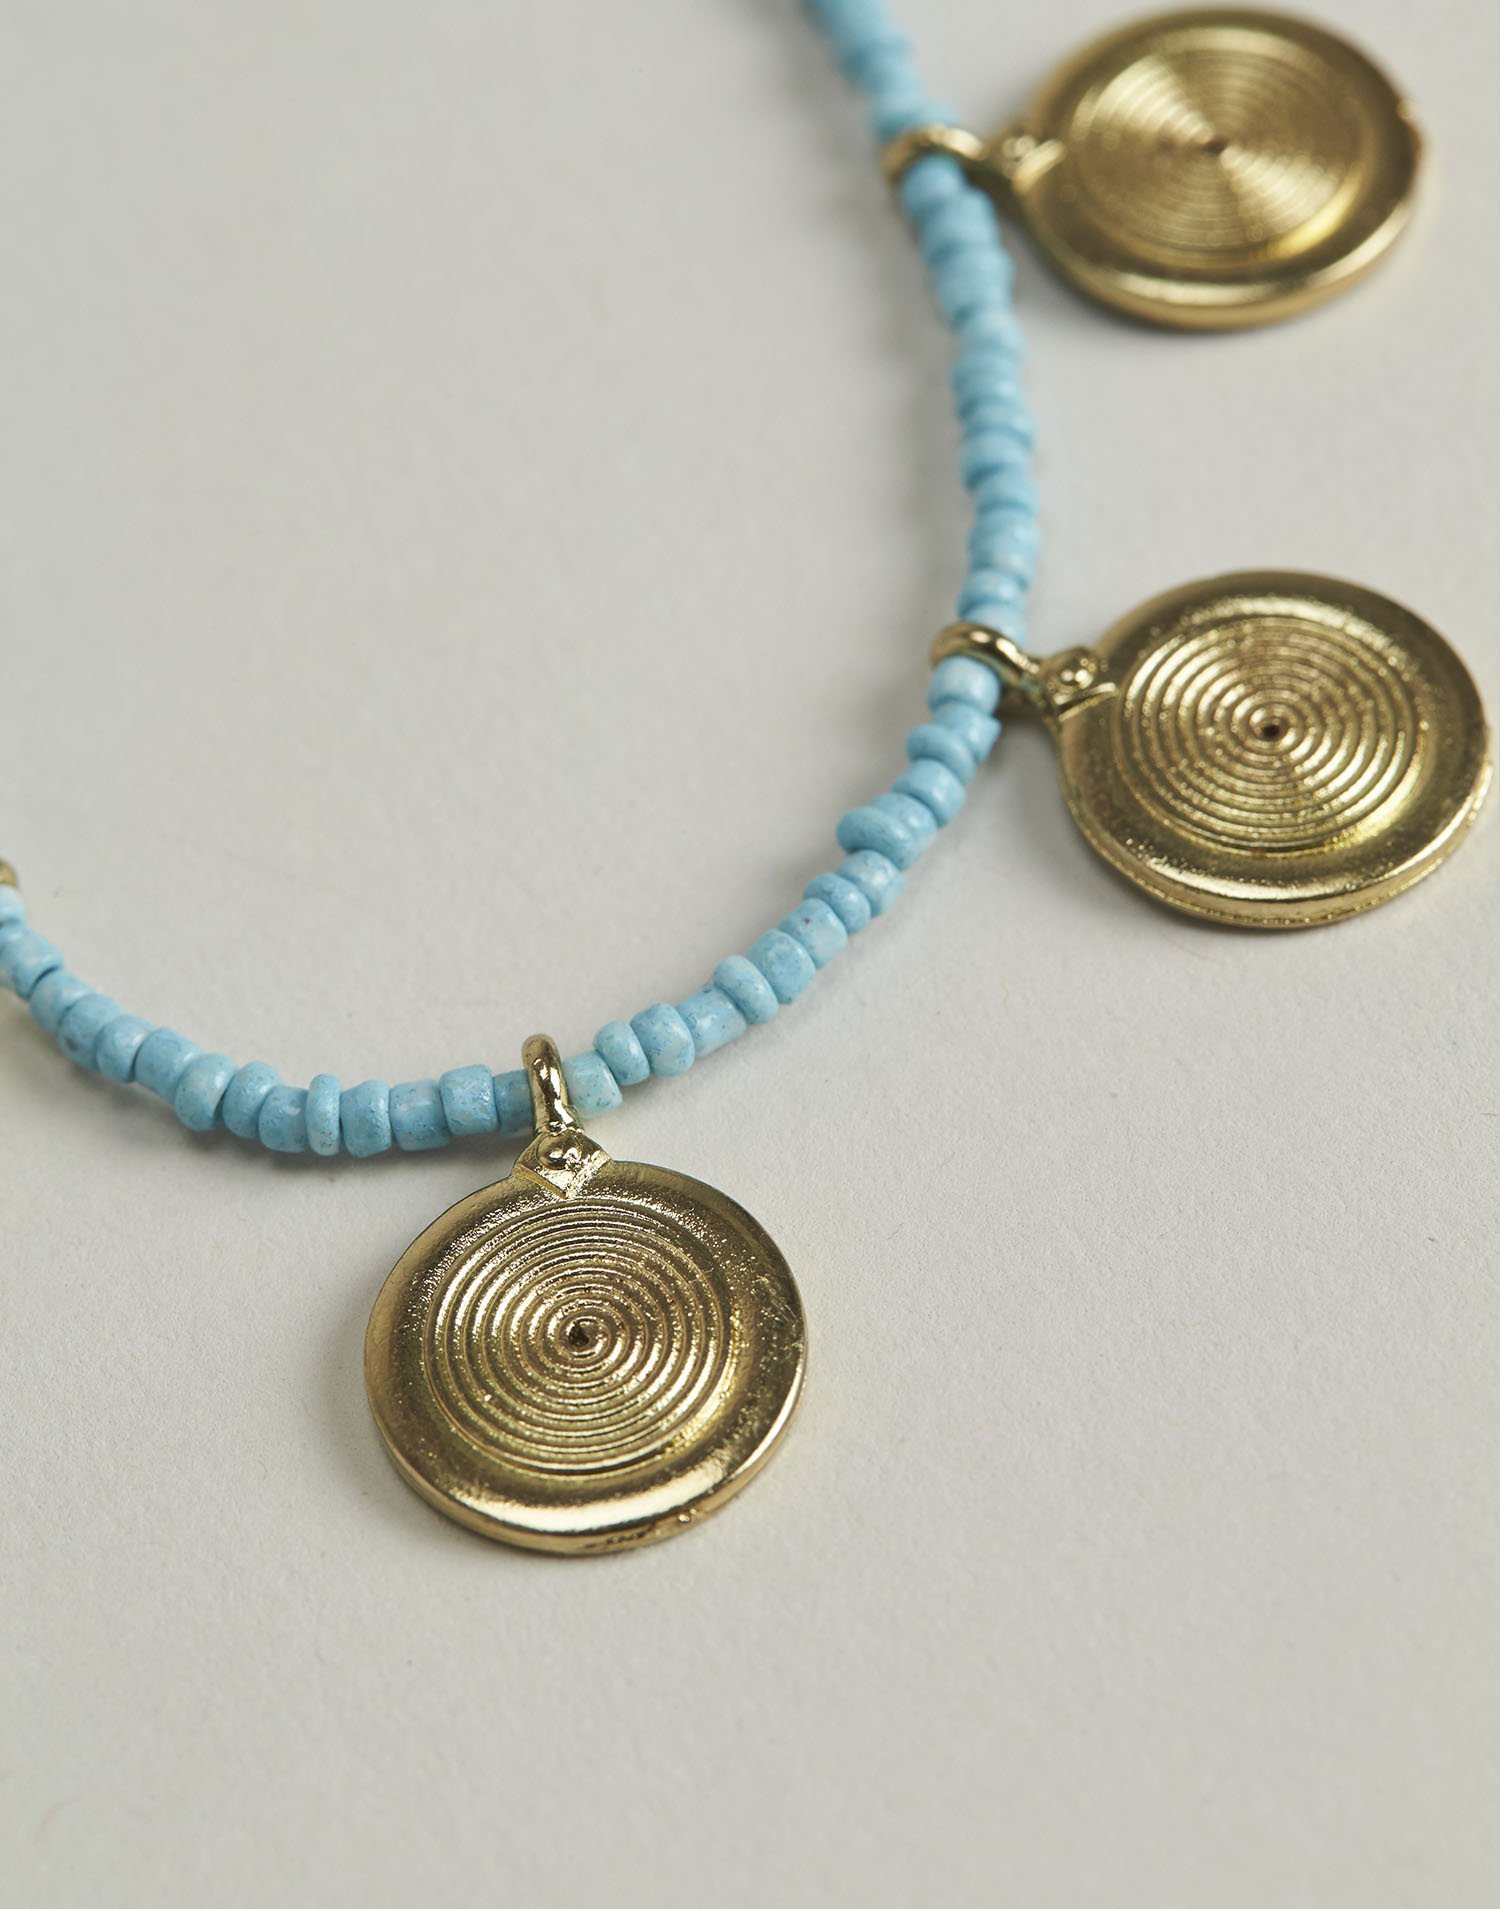 Spiral medallions necklace